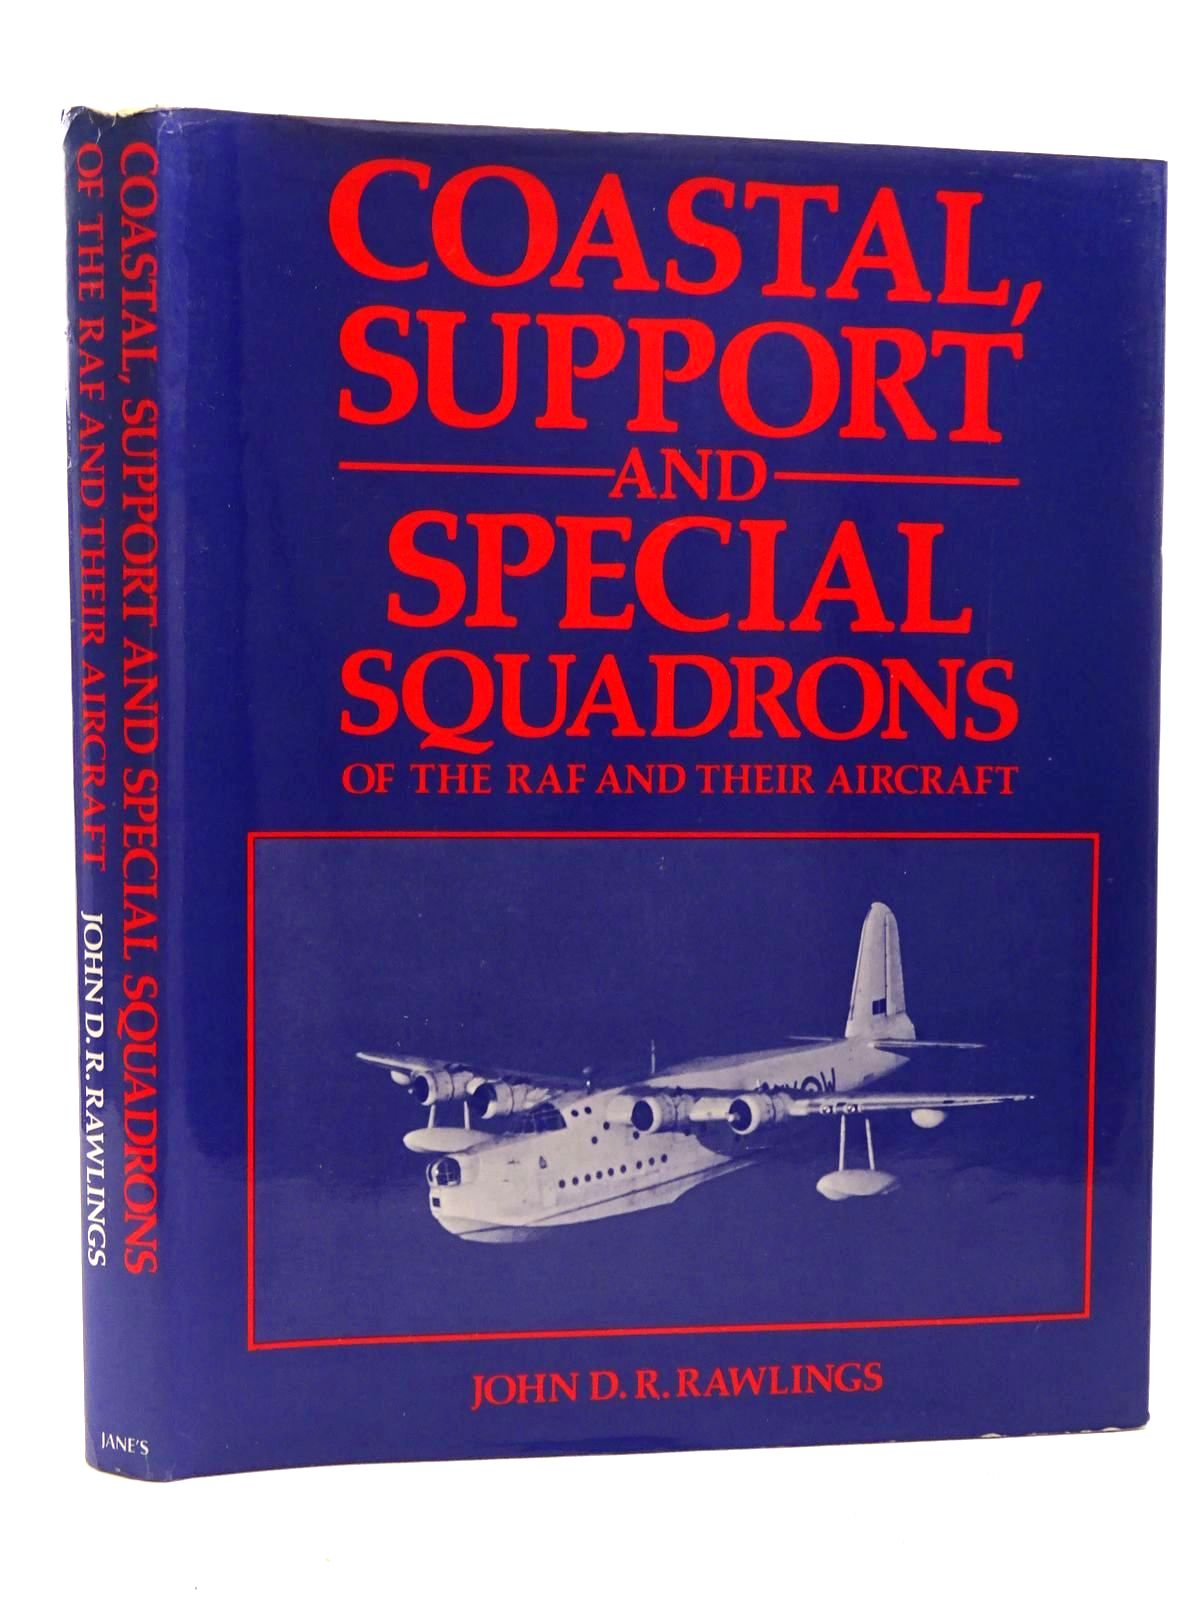 Photo of COASTAL, SUPPORT AND SPECIAL SQUADRONS OF THE RAF AND THEIR AIRCRAFT written by Rawlings, John D.R. published by Jane's Publishing Company (STOCK CODE: 1610477)  for sale by Stella & Rose's Books